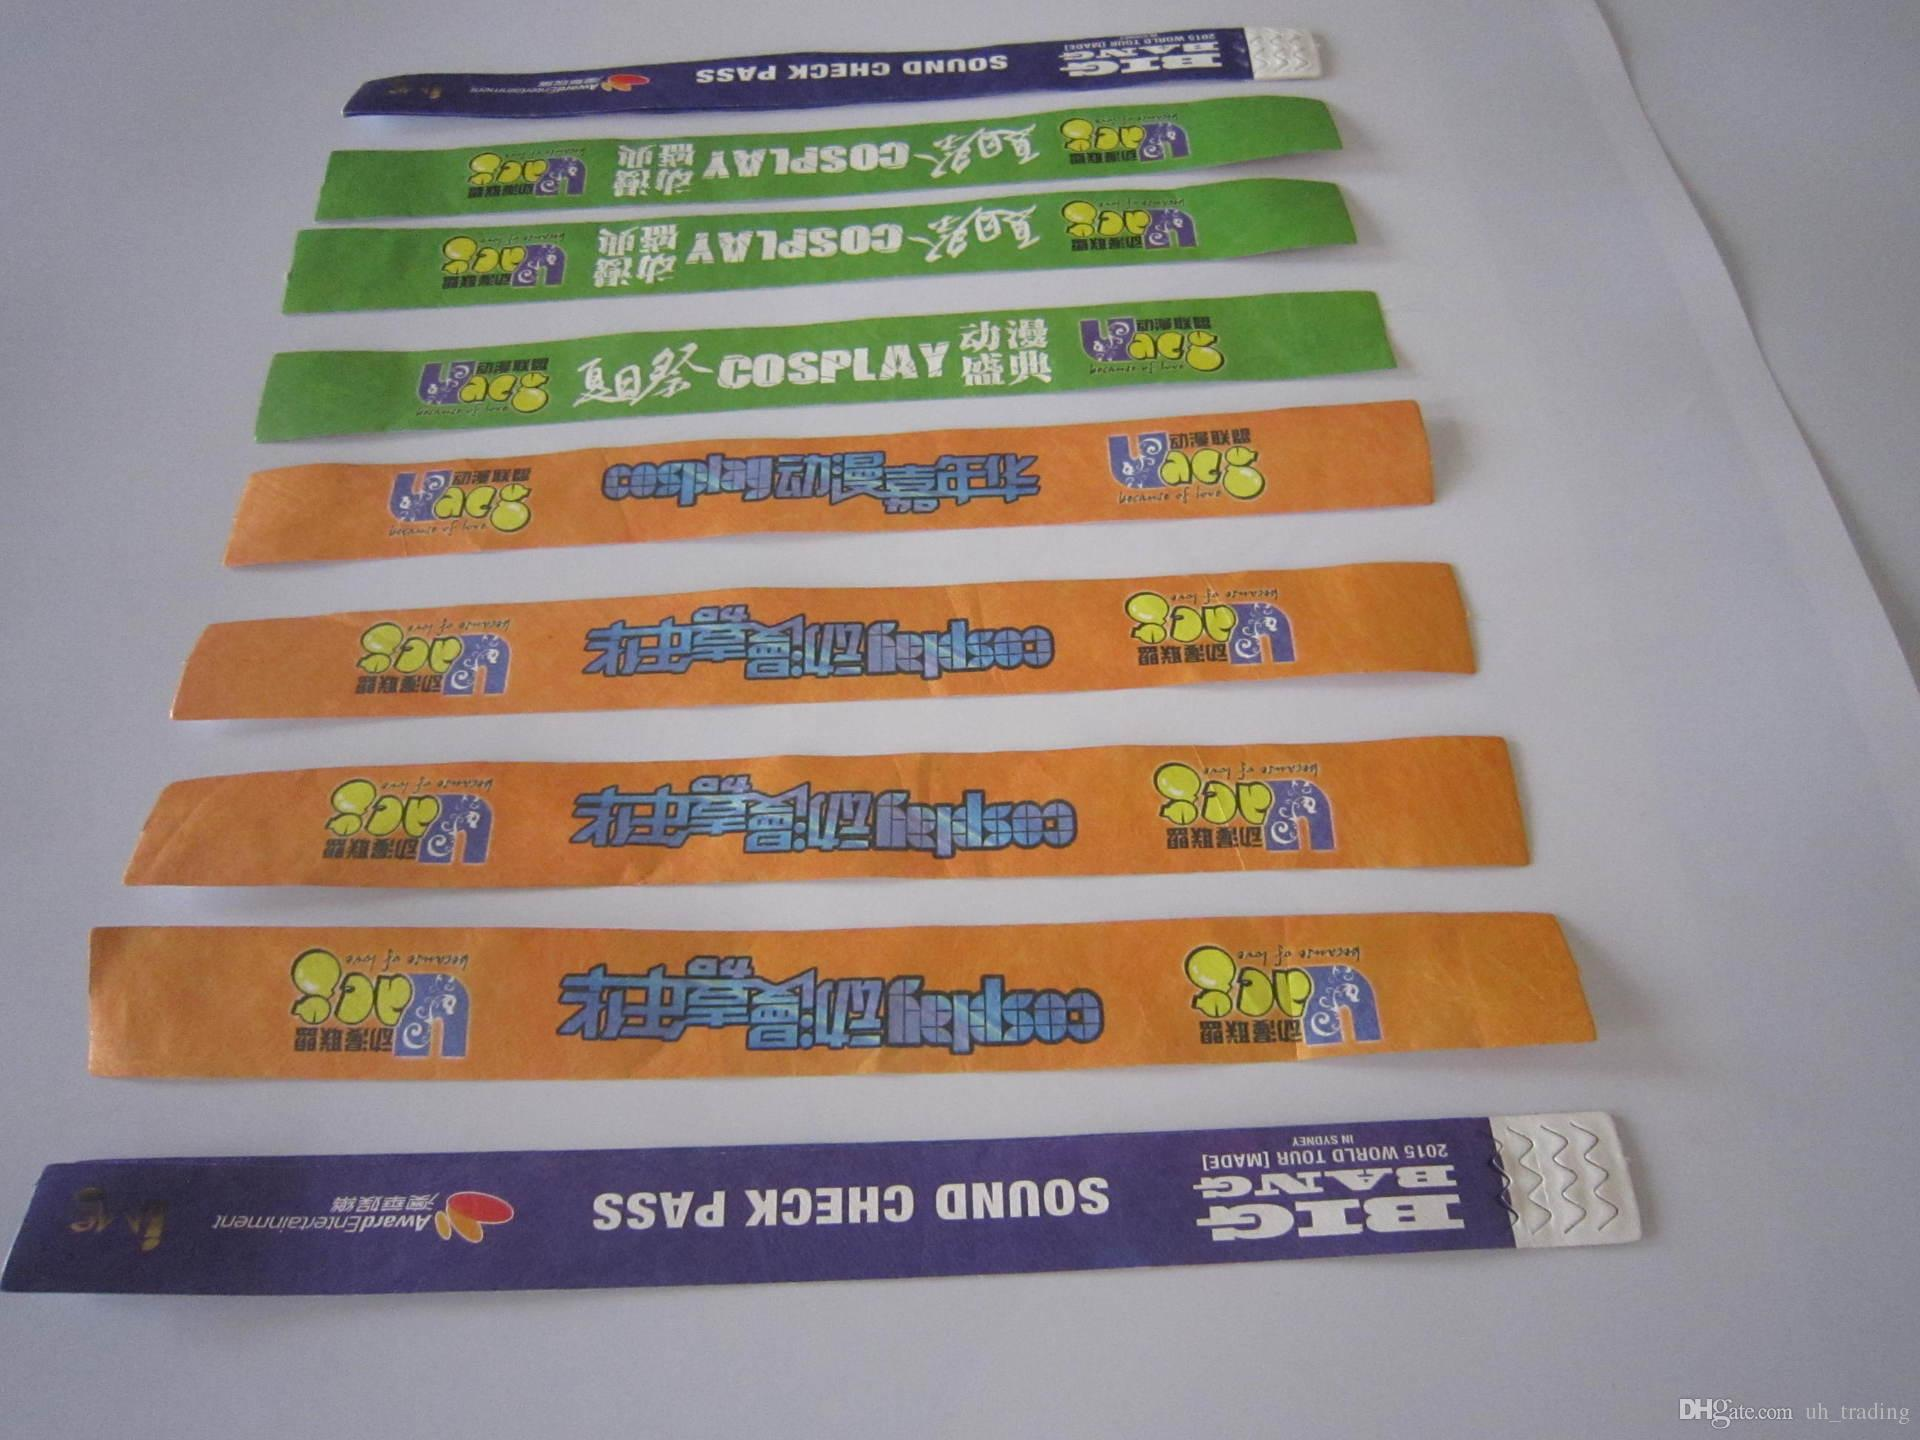 paper wristband Uline stocks a huge selection of paper wristbands, paper wrist bands and event wrist bands order by 6 pm for same day shipping over 34,000 products in stock 11 locations across usa.